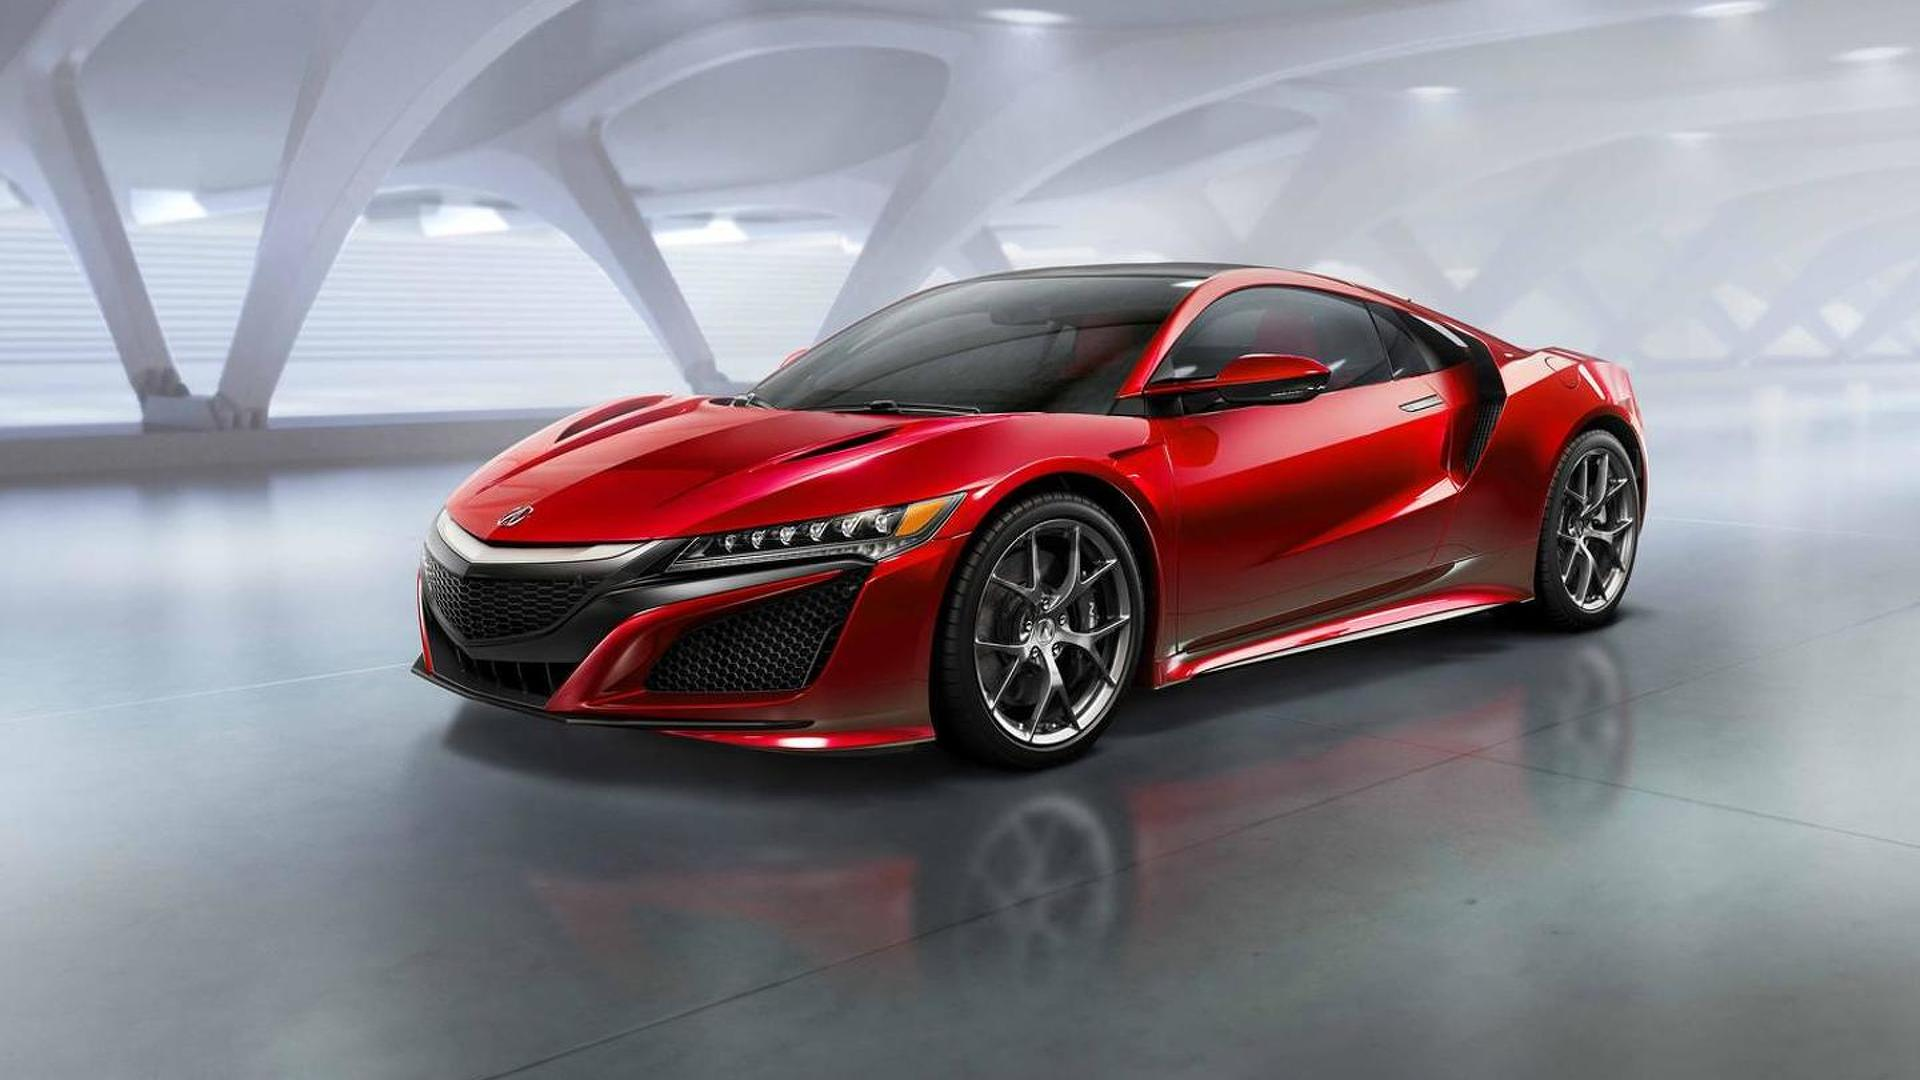 Acura exec hints at a track package for the 2016 NSX